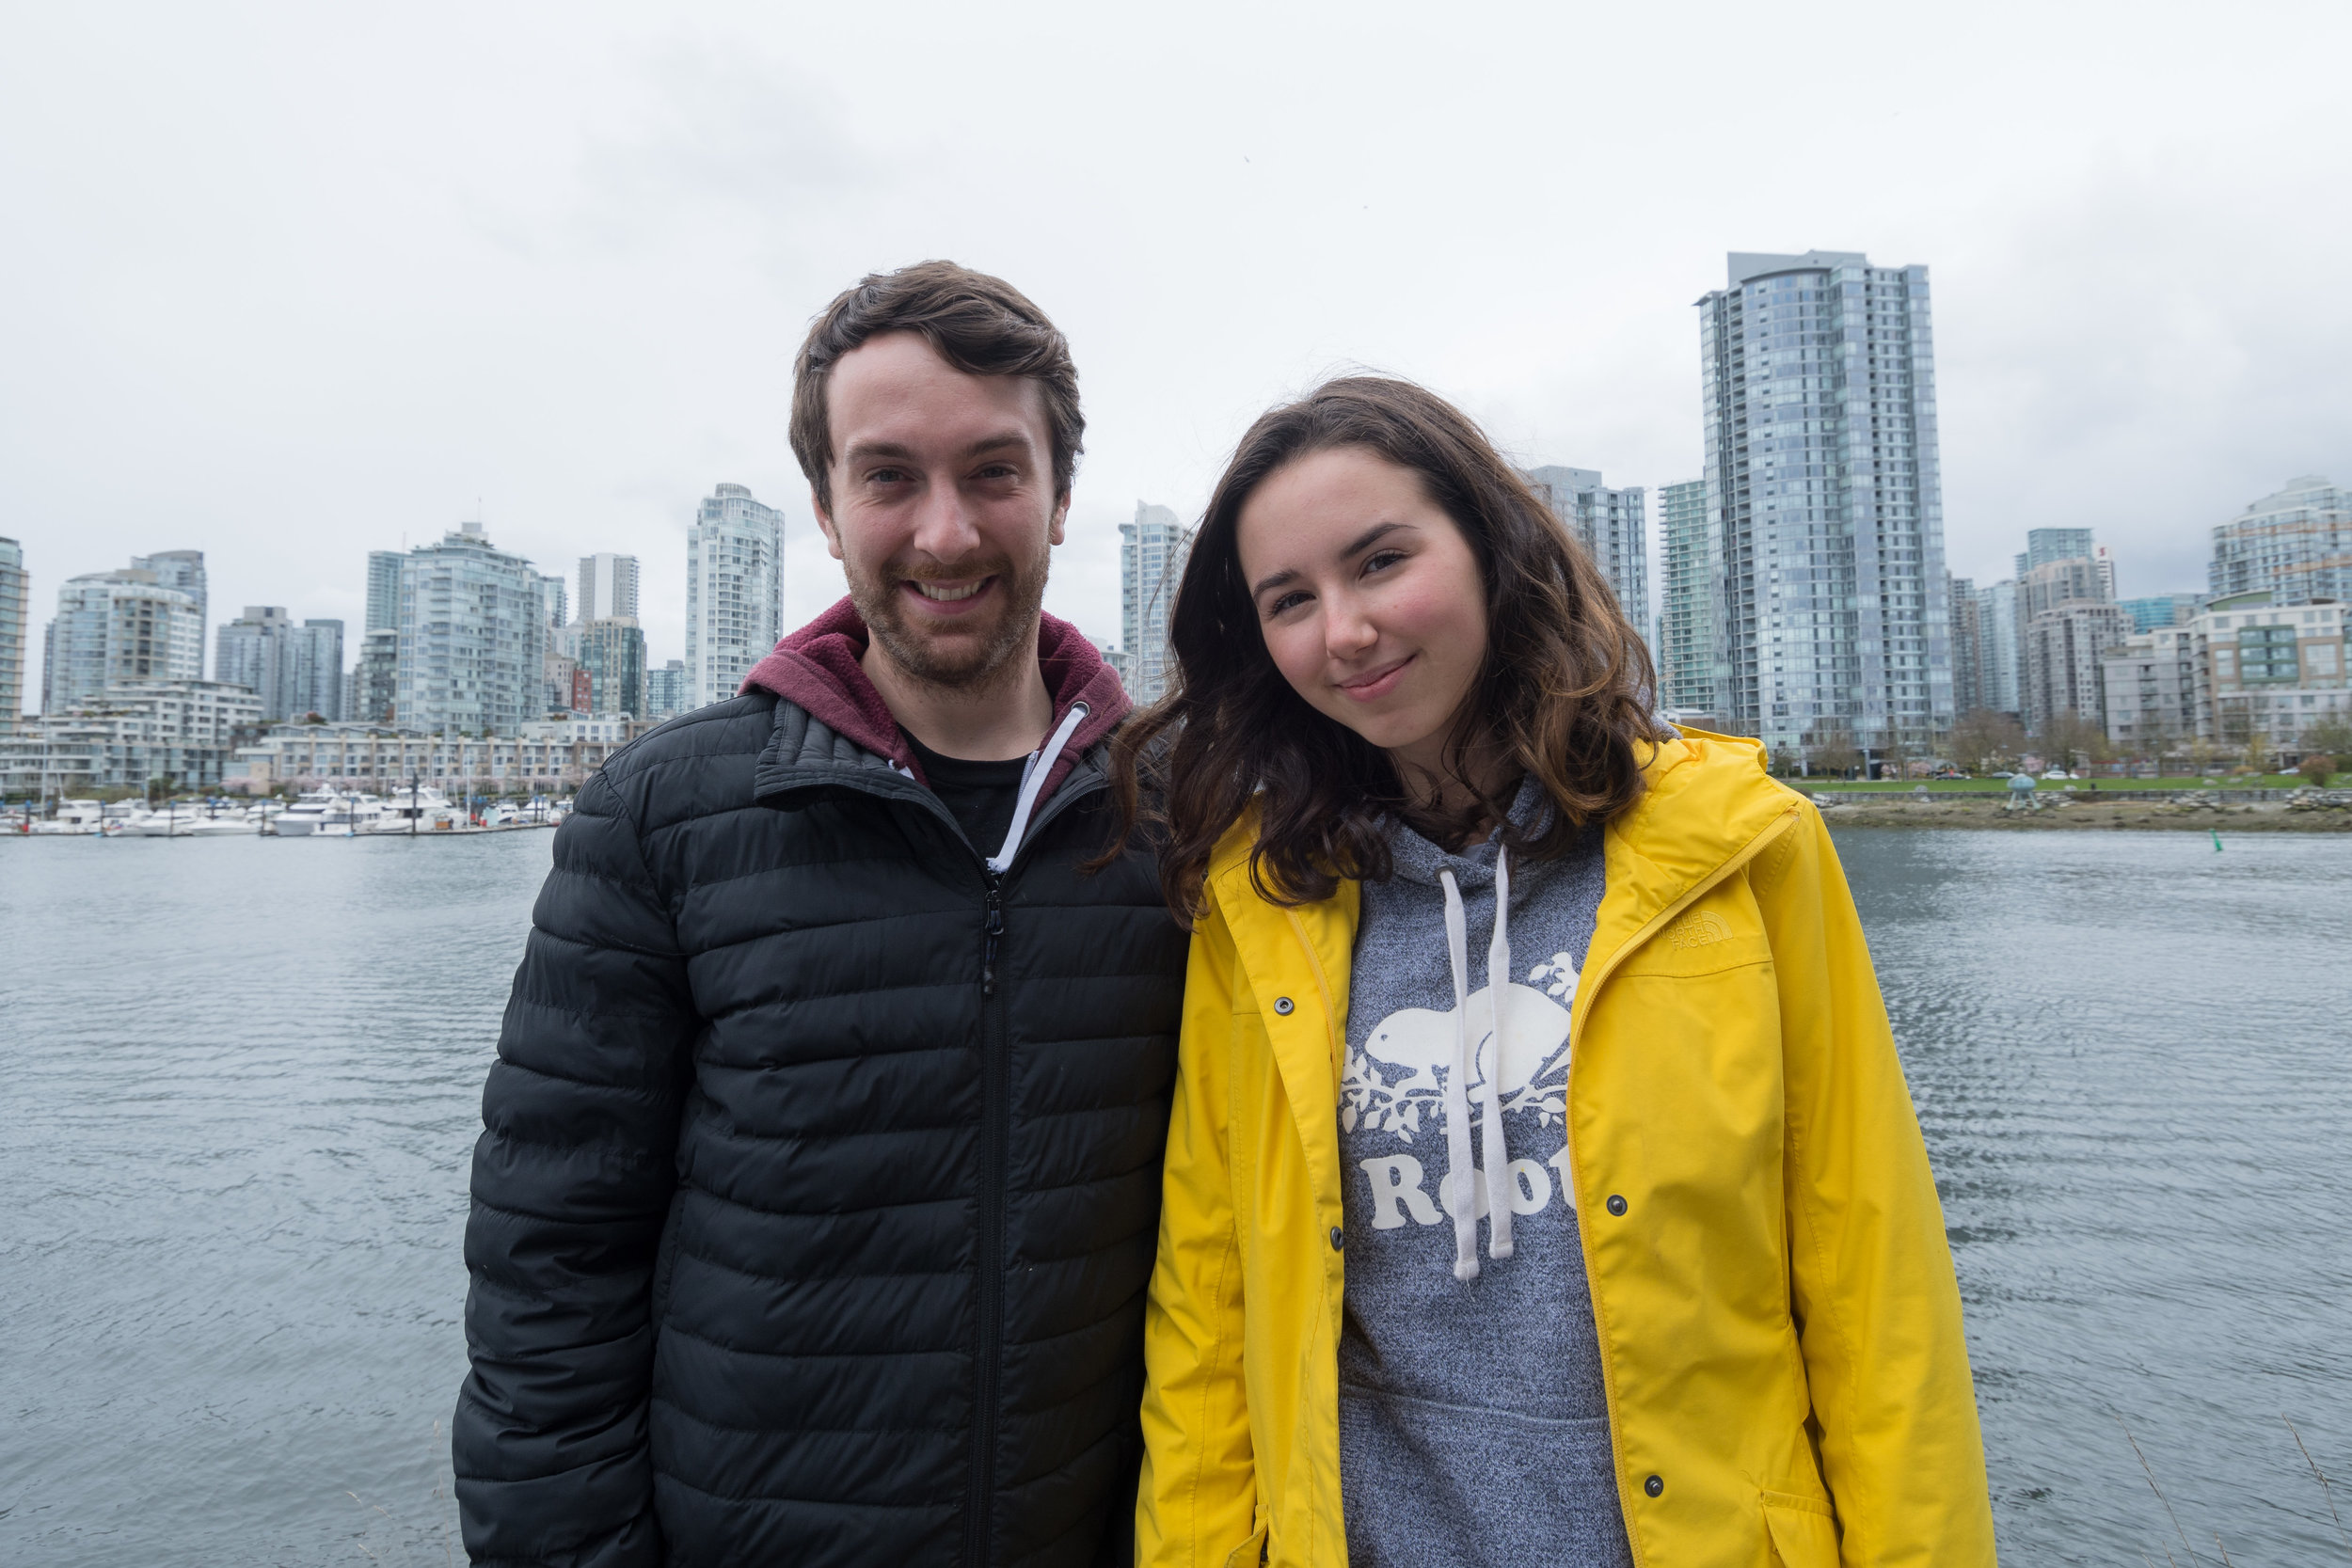 Emily Lowan, on the right, with her mentor Kyle Empringham. Photo: Ivan Belko Photography